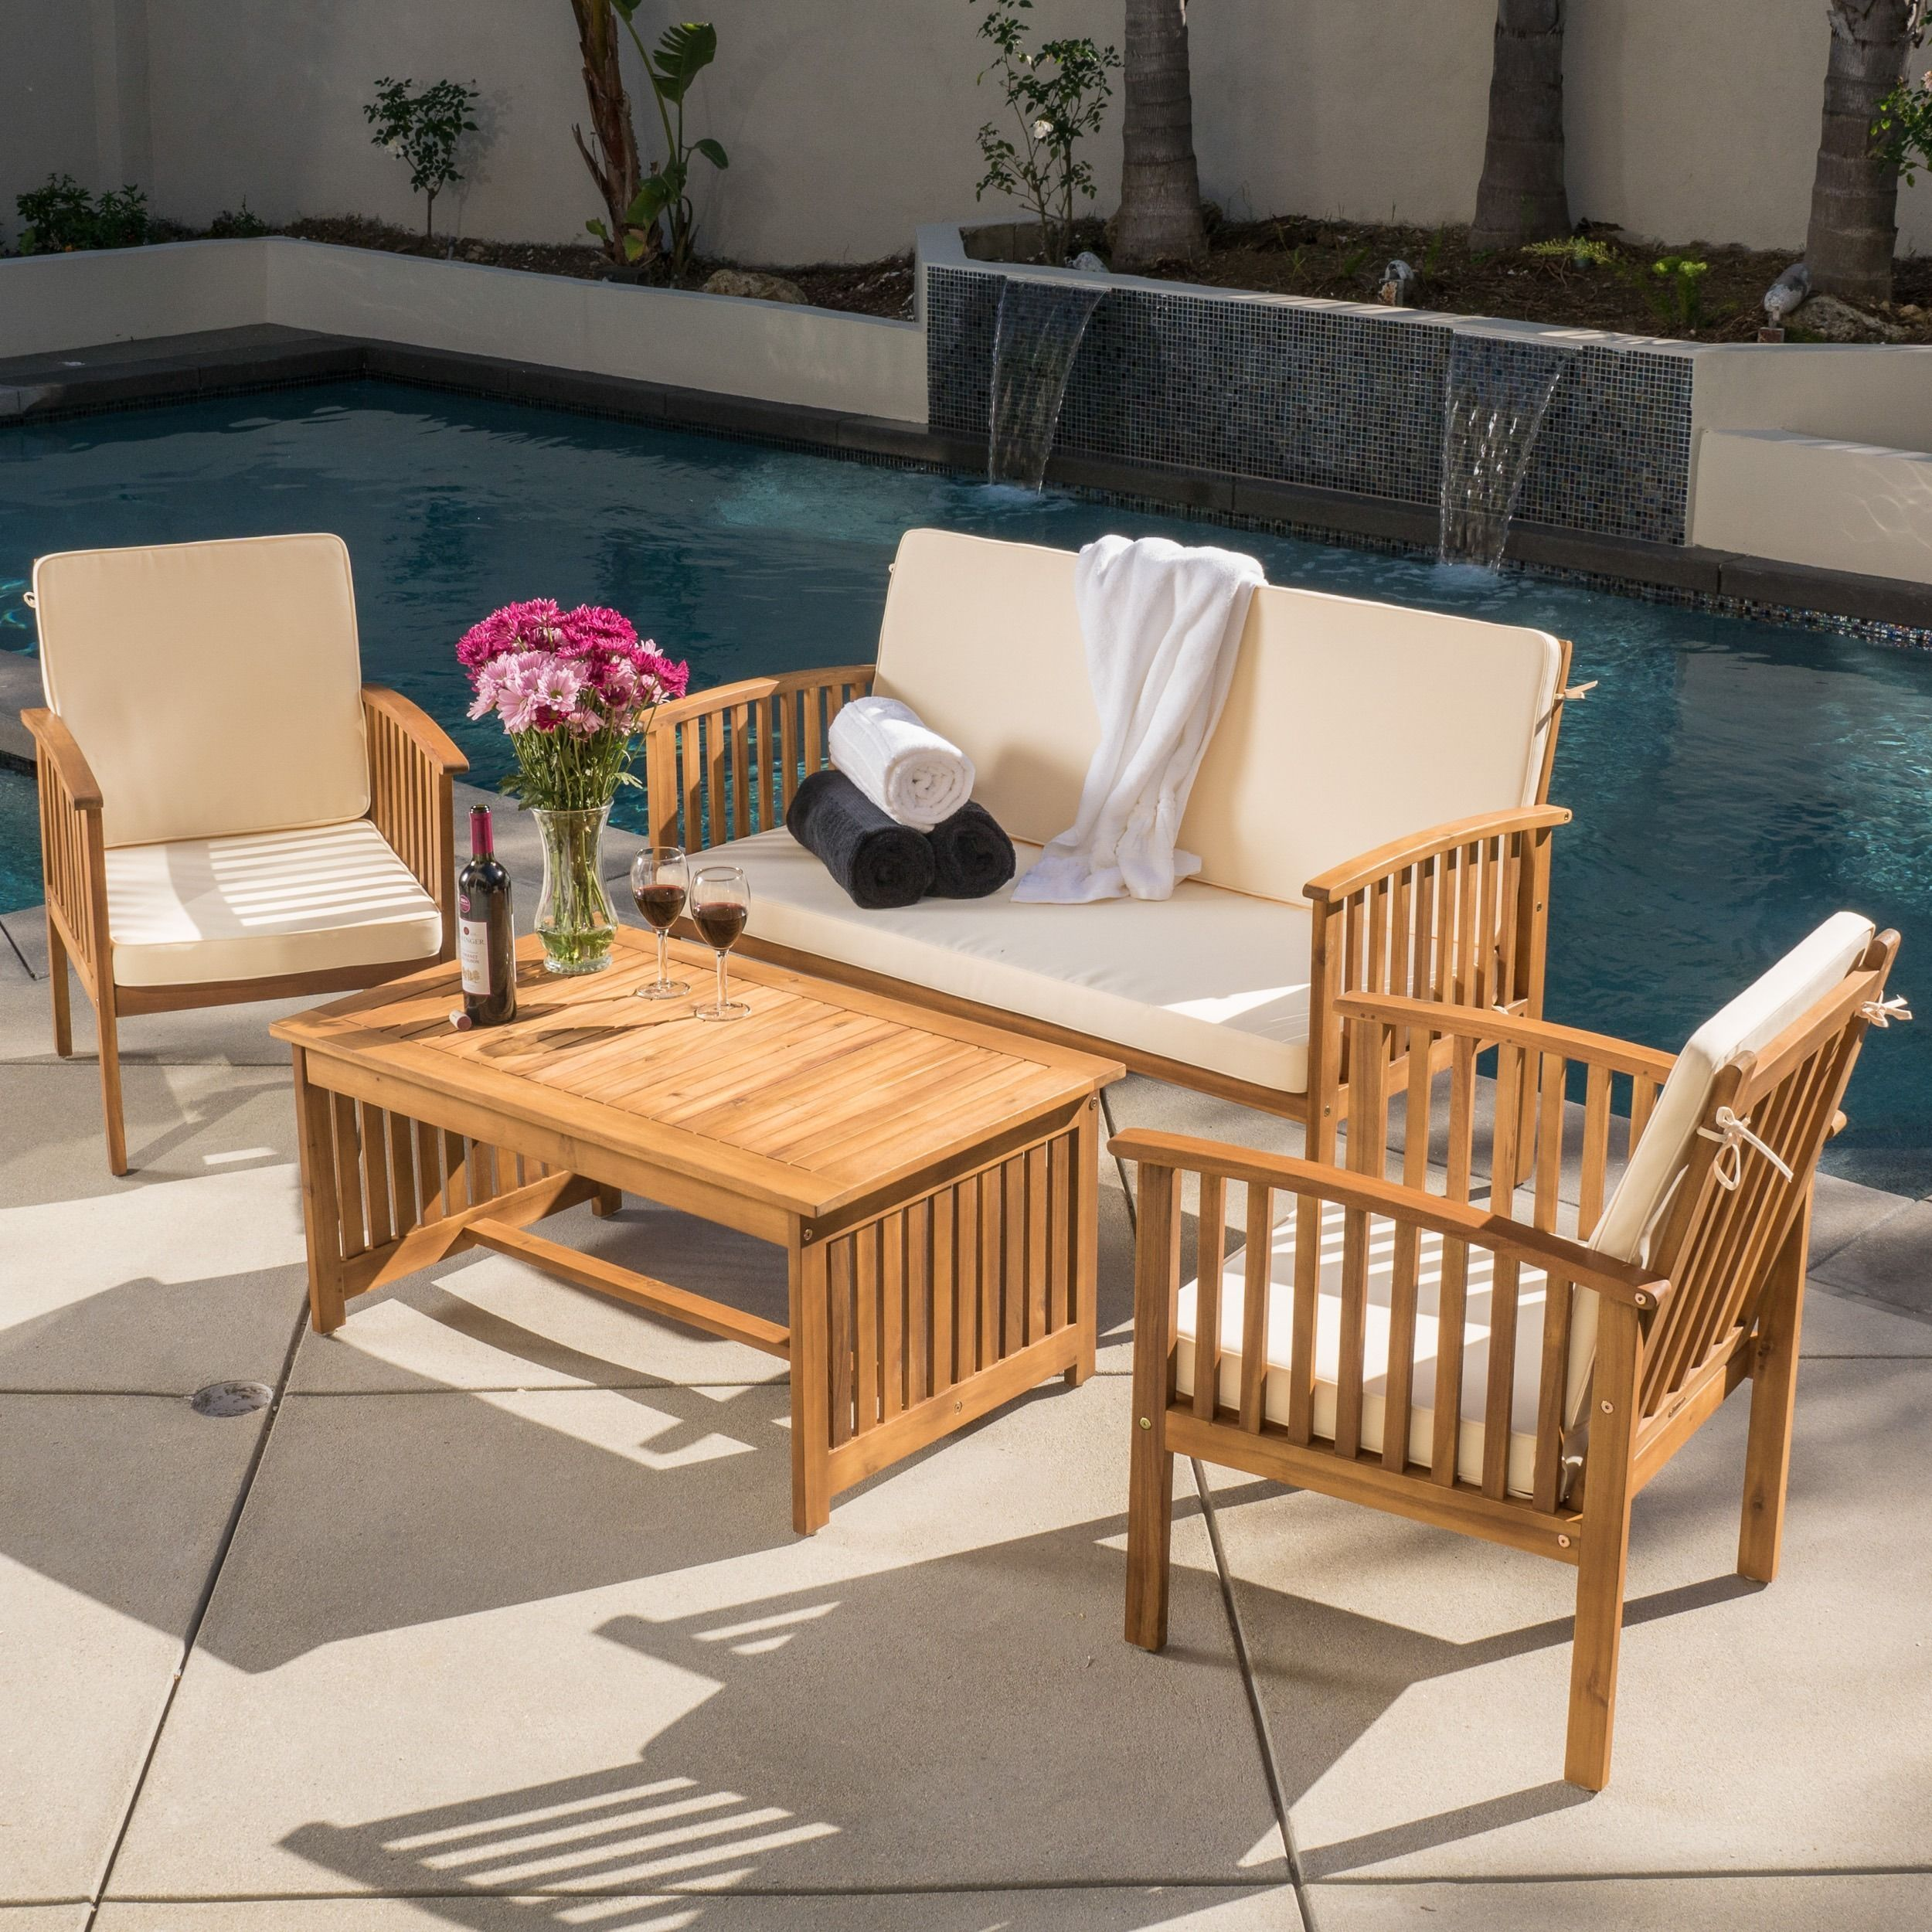 The carolina fourpiece outdoor acacia sofa set offers all the